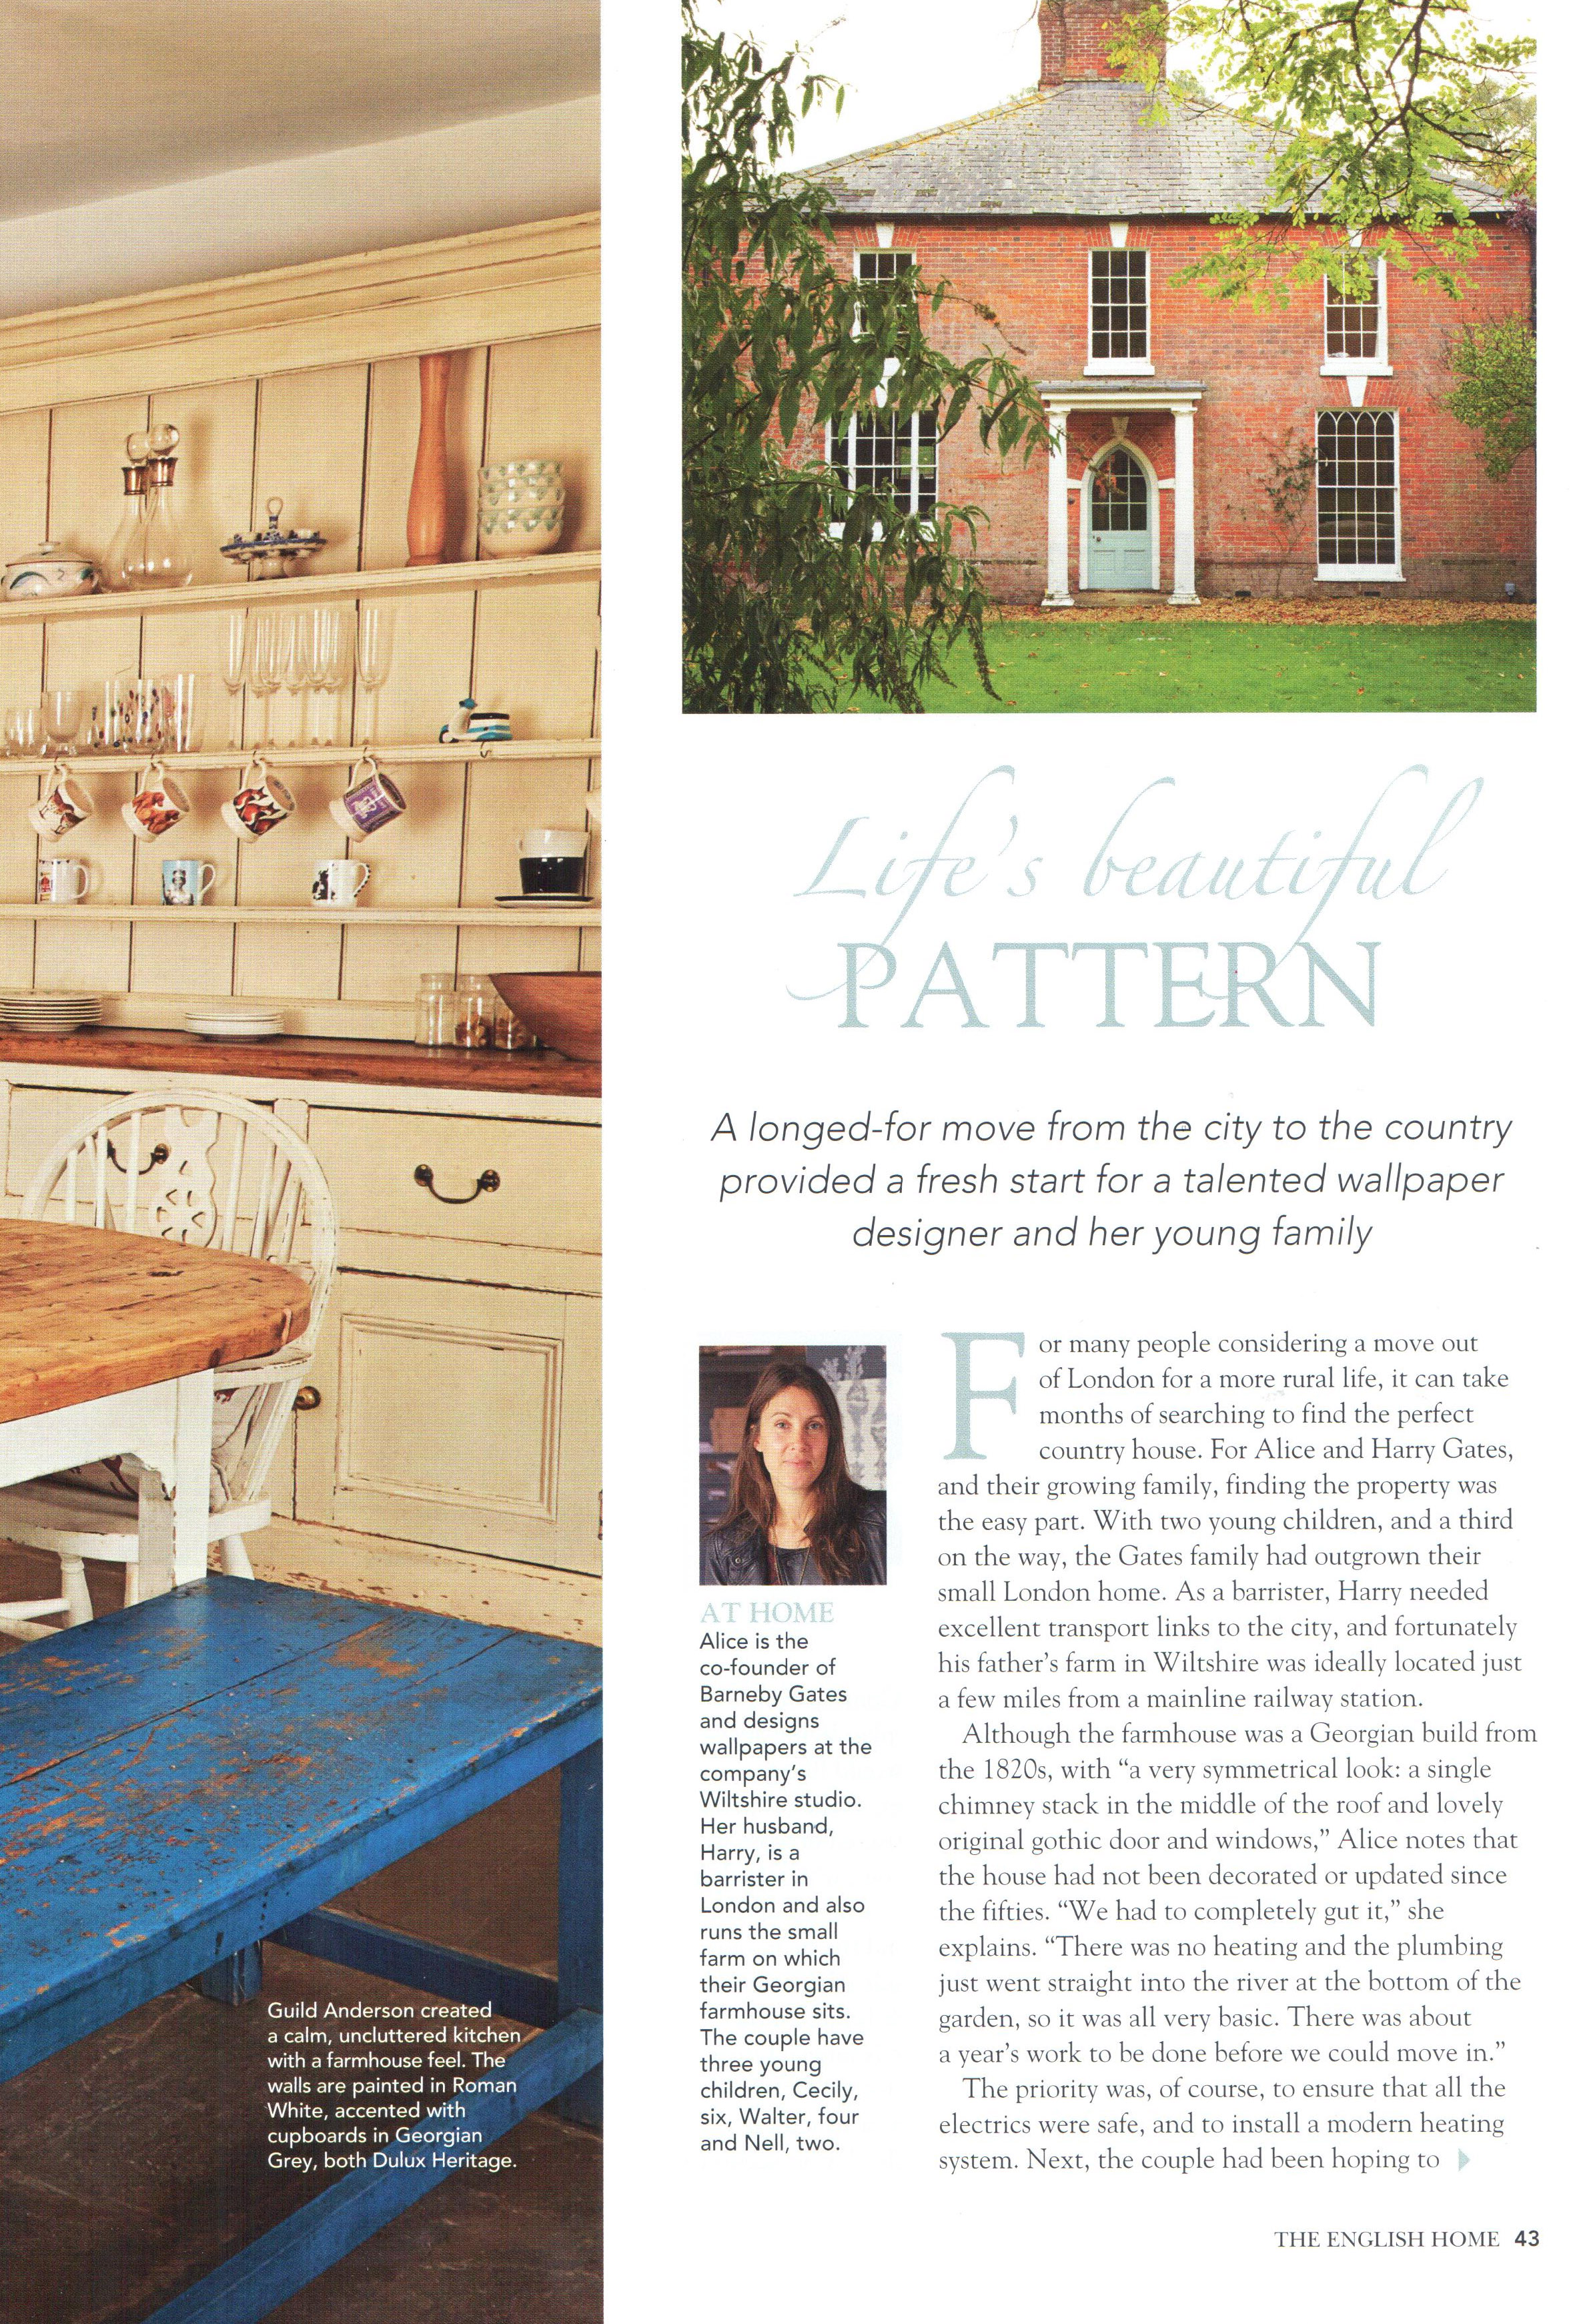 The English Home - May 2014 - Article, page 2